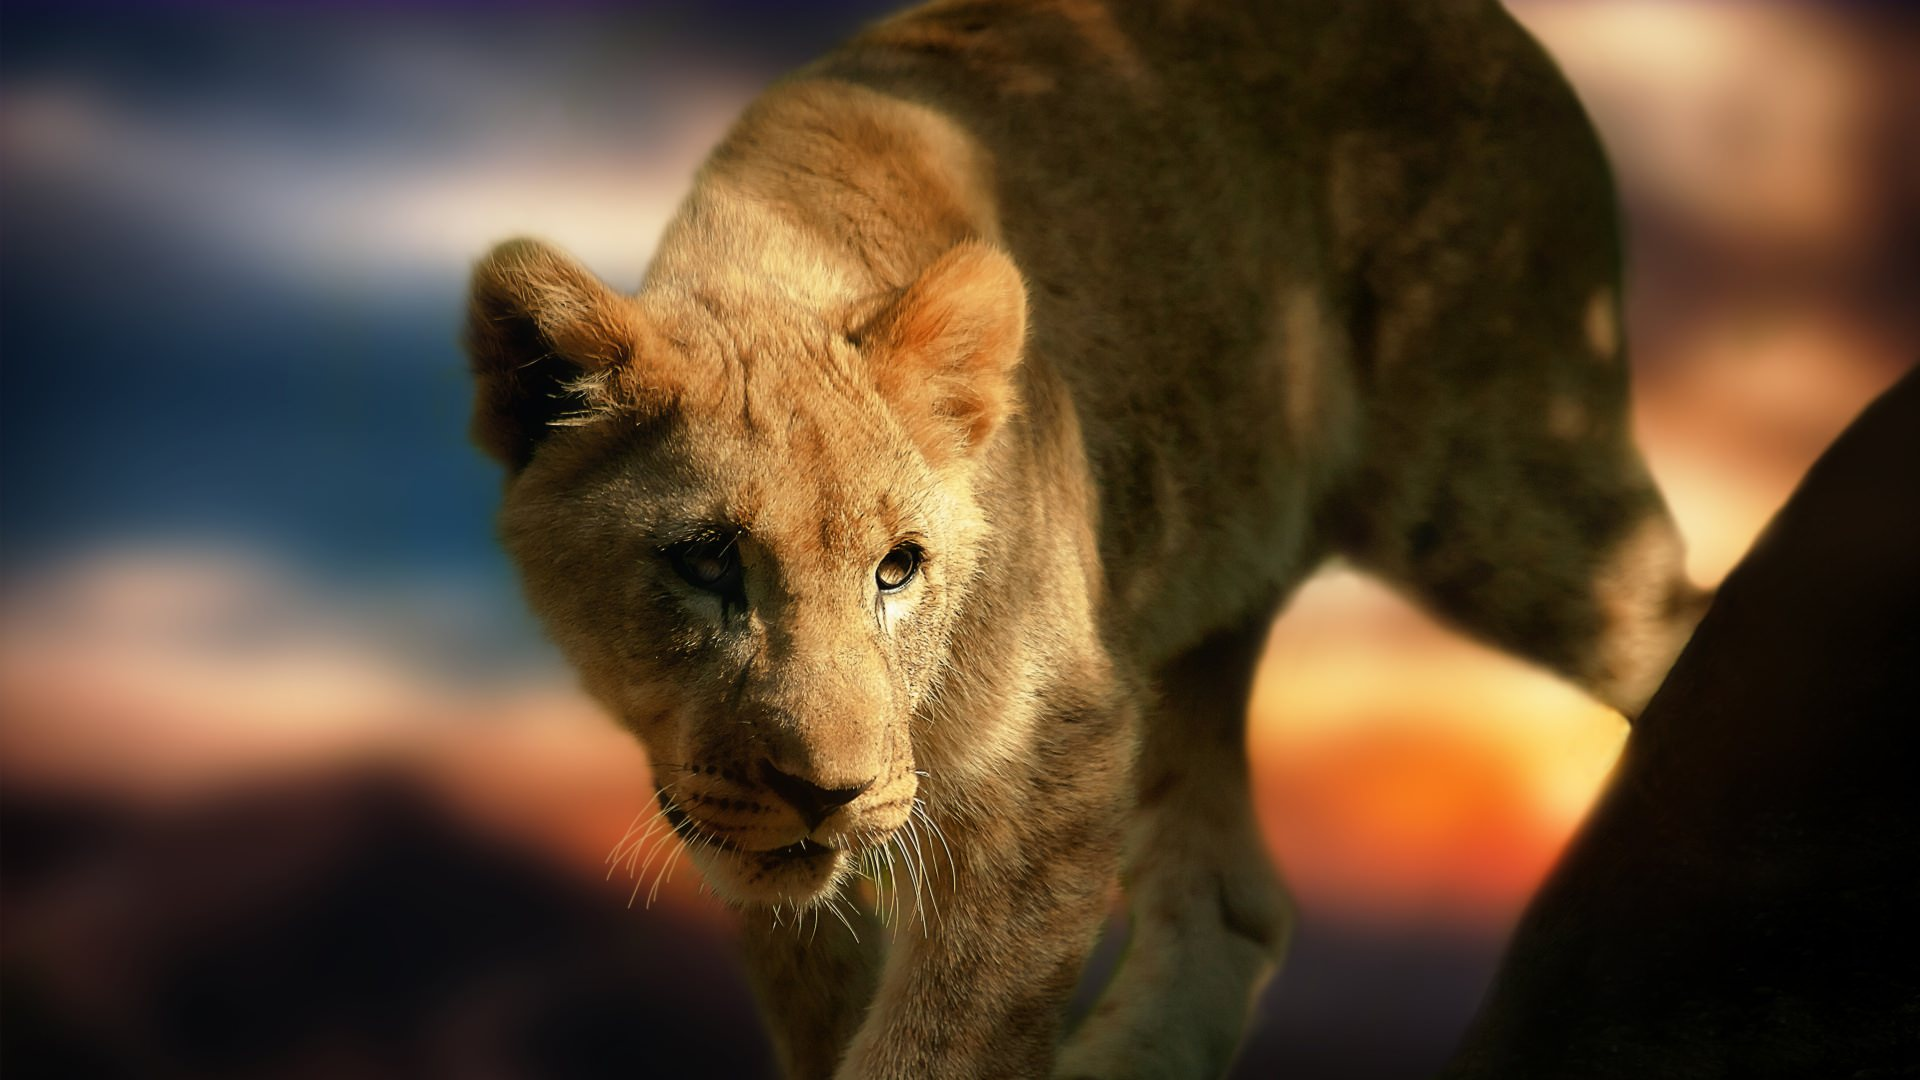 Nice Wallpaper of Lion Cub